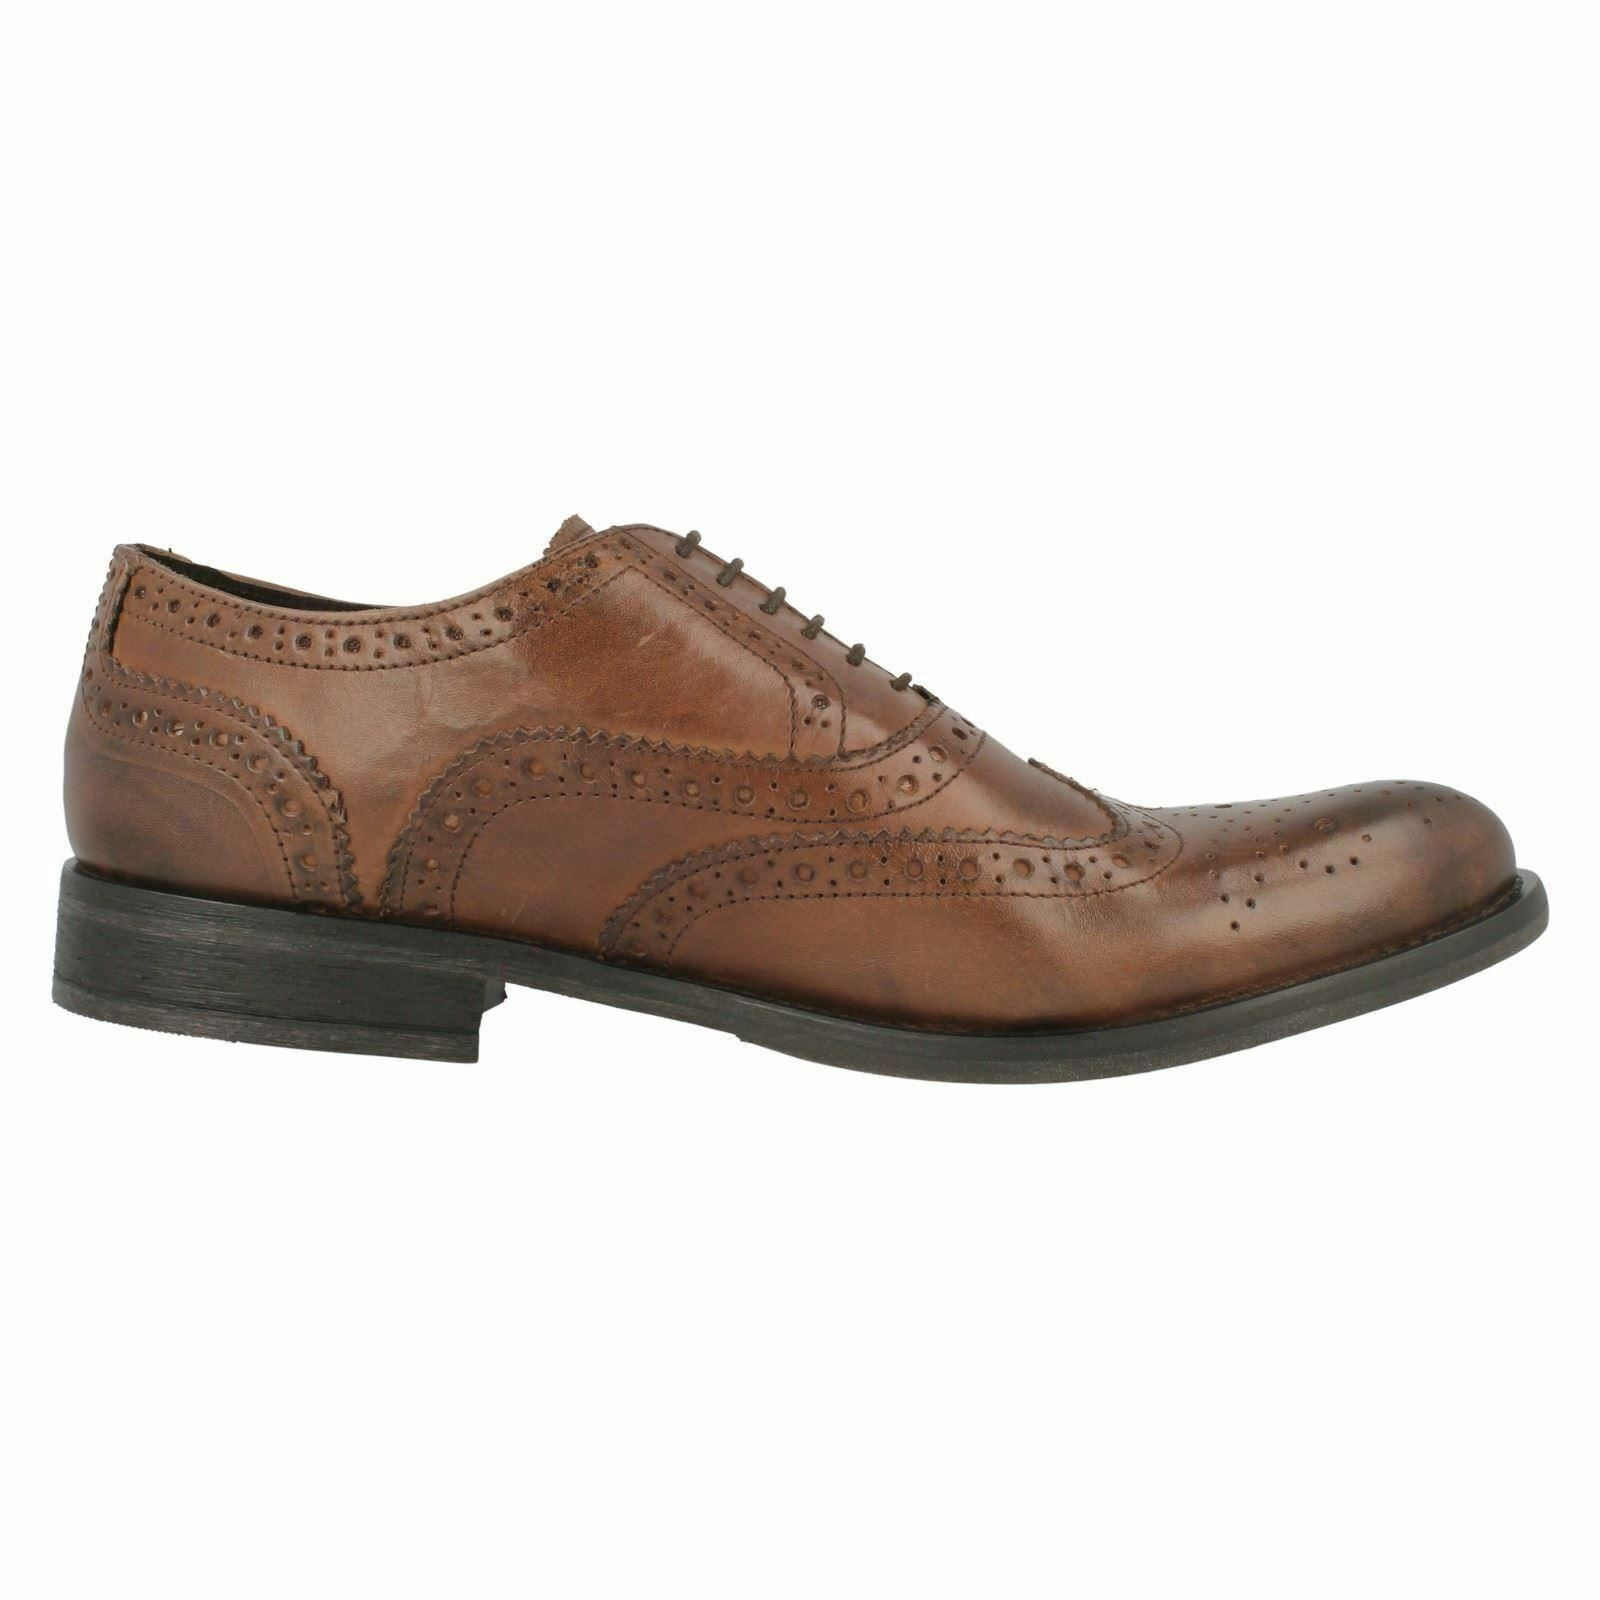 SALE Base London Walnut Gents Marrón Leather Leather Leather Full Brogue Wingtip Oxford Zapatos 51a97d